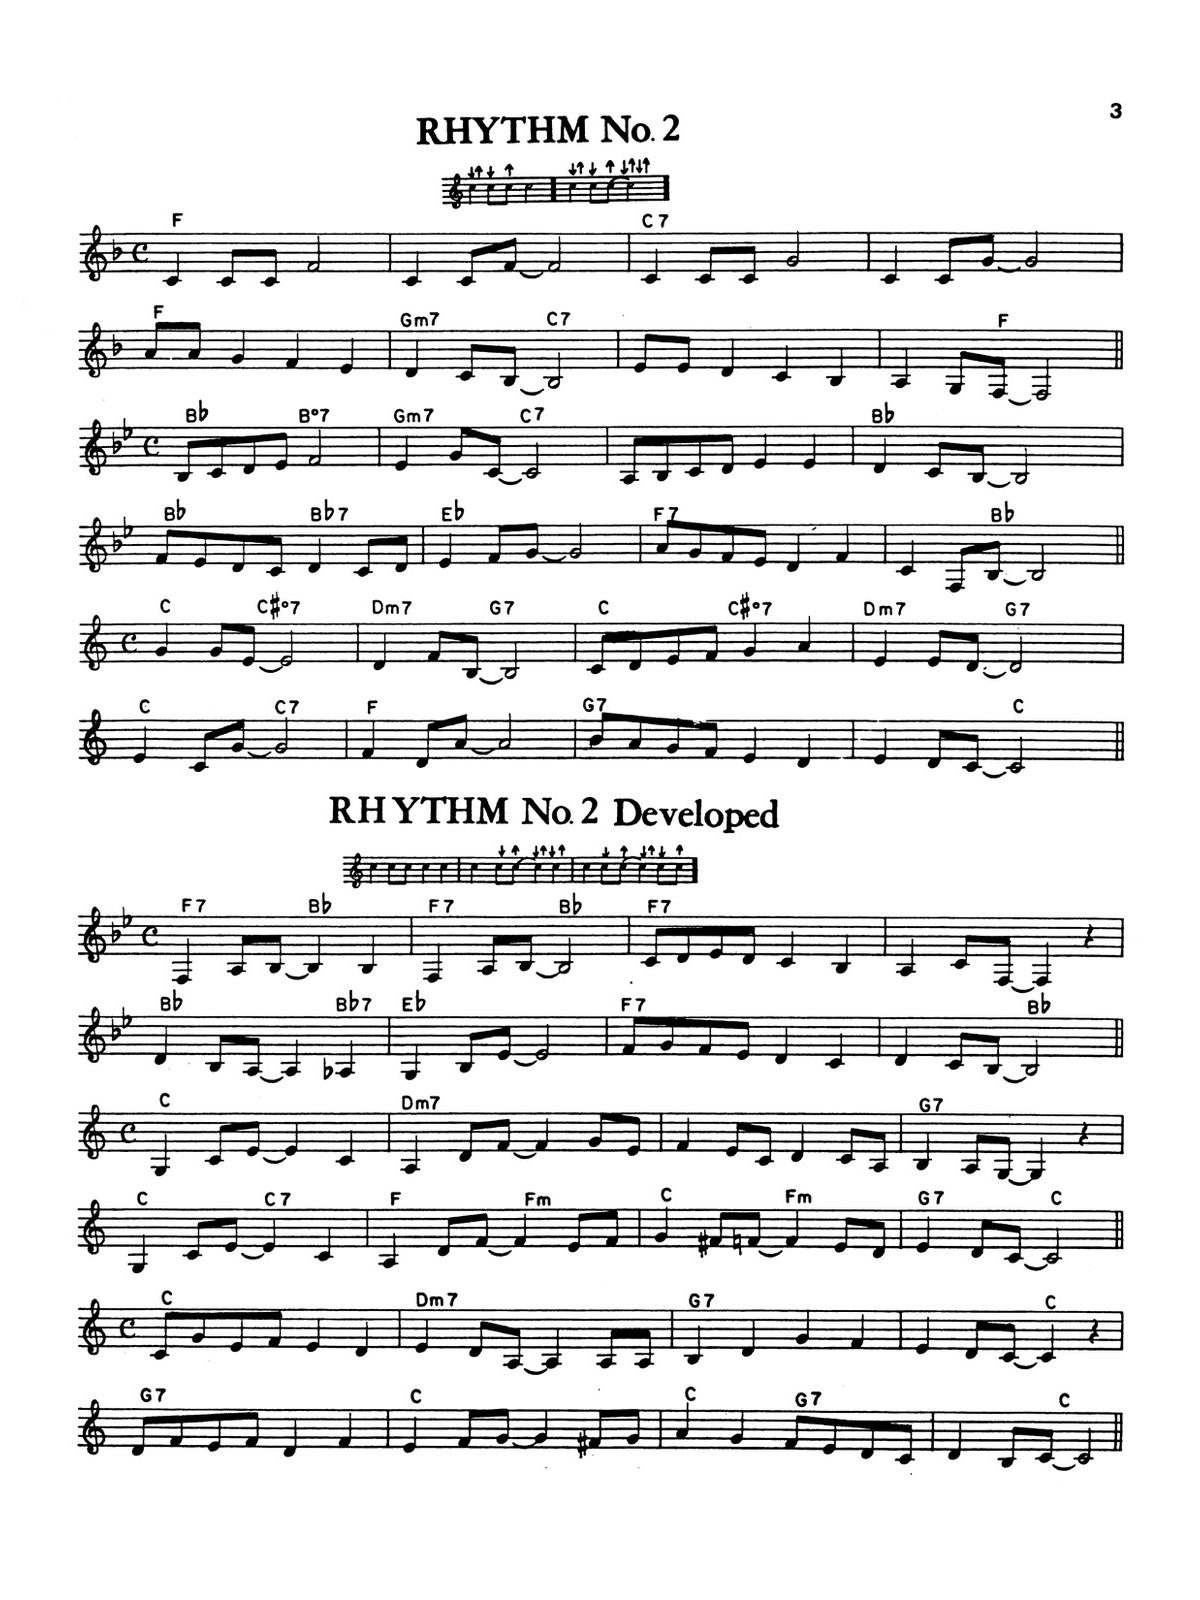 Bower, Rhythms Complete for French Horn-p05